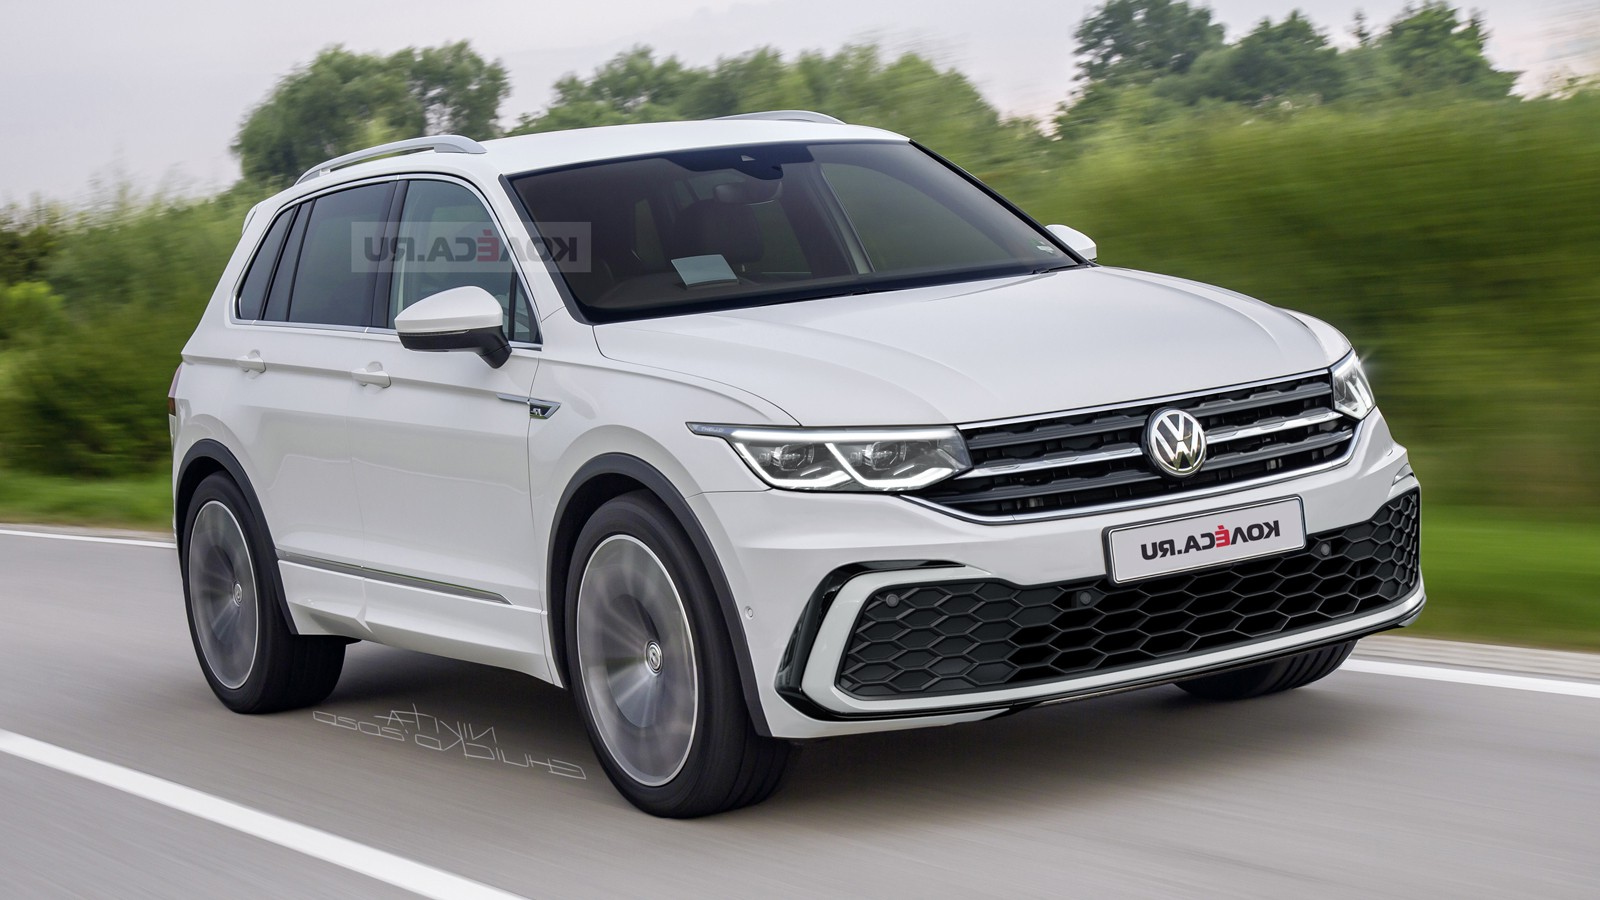 2021 Volkswagen Tiguan: Here's What It Could Look Like